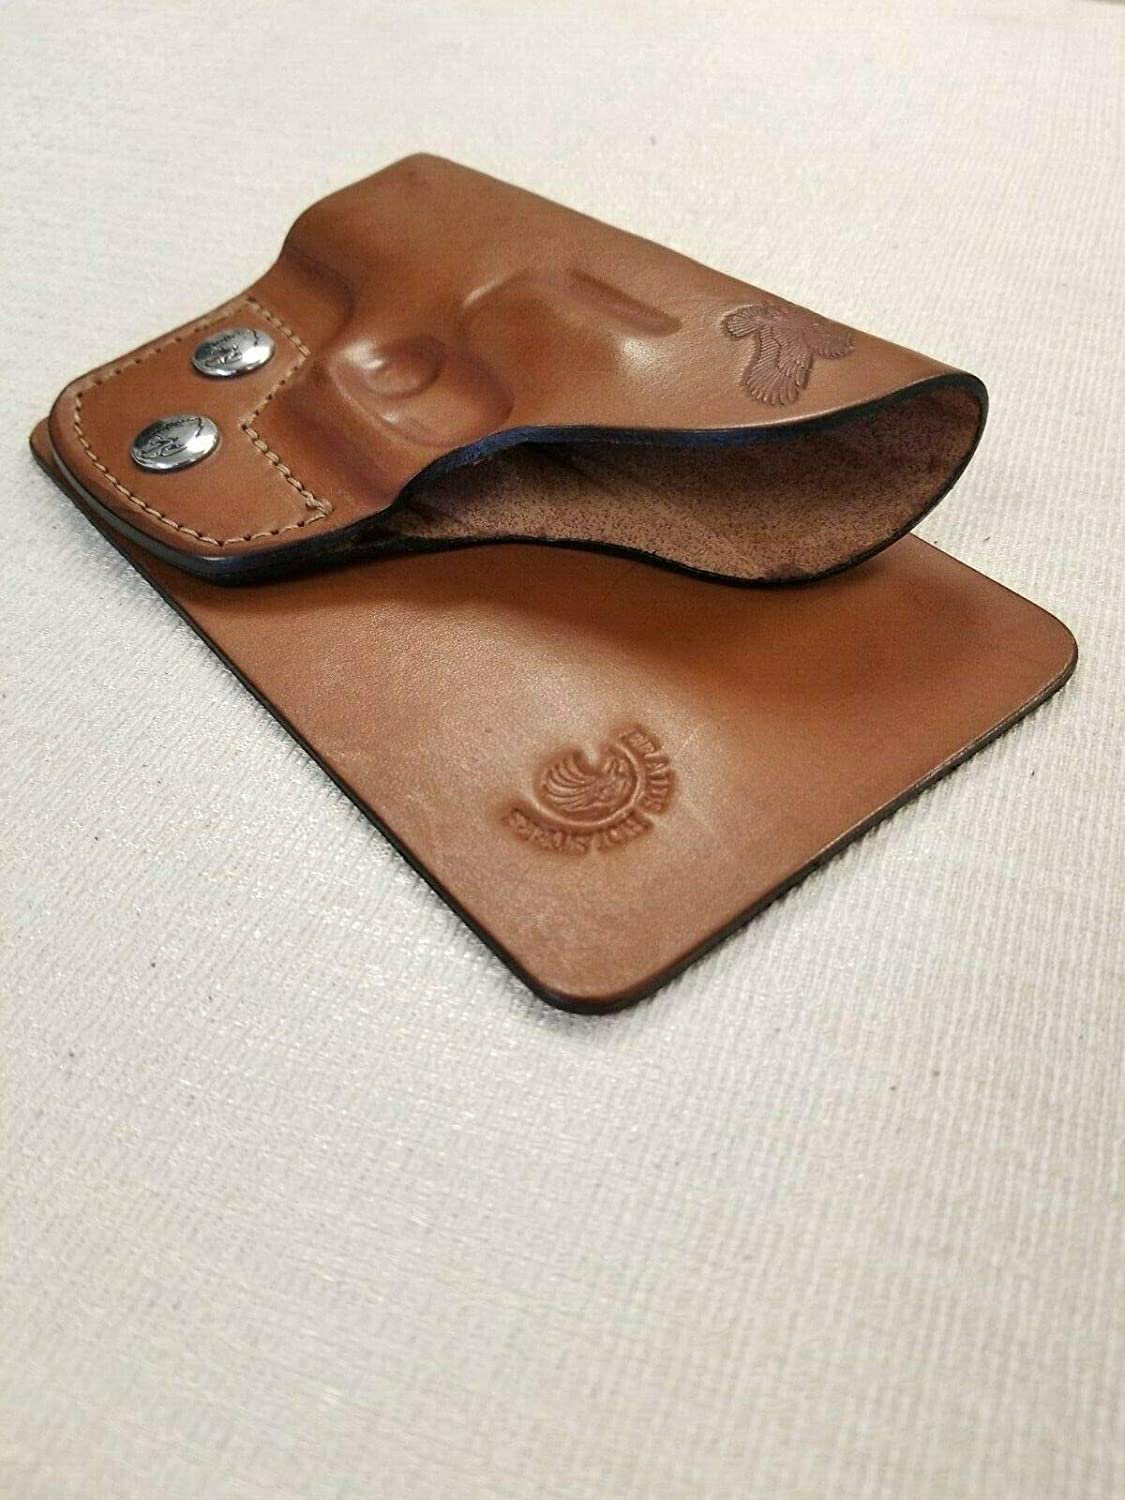 Leather Purse//Pocket HOLSTER for Glock 42 Various Browns /& Black Made in USA